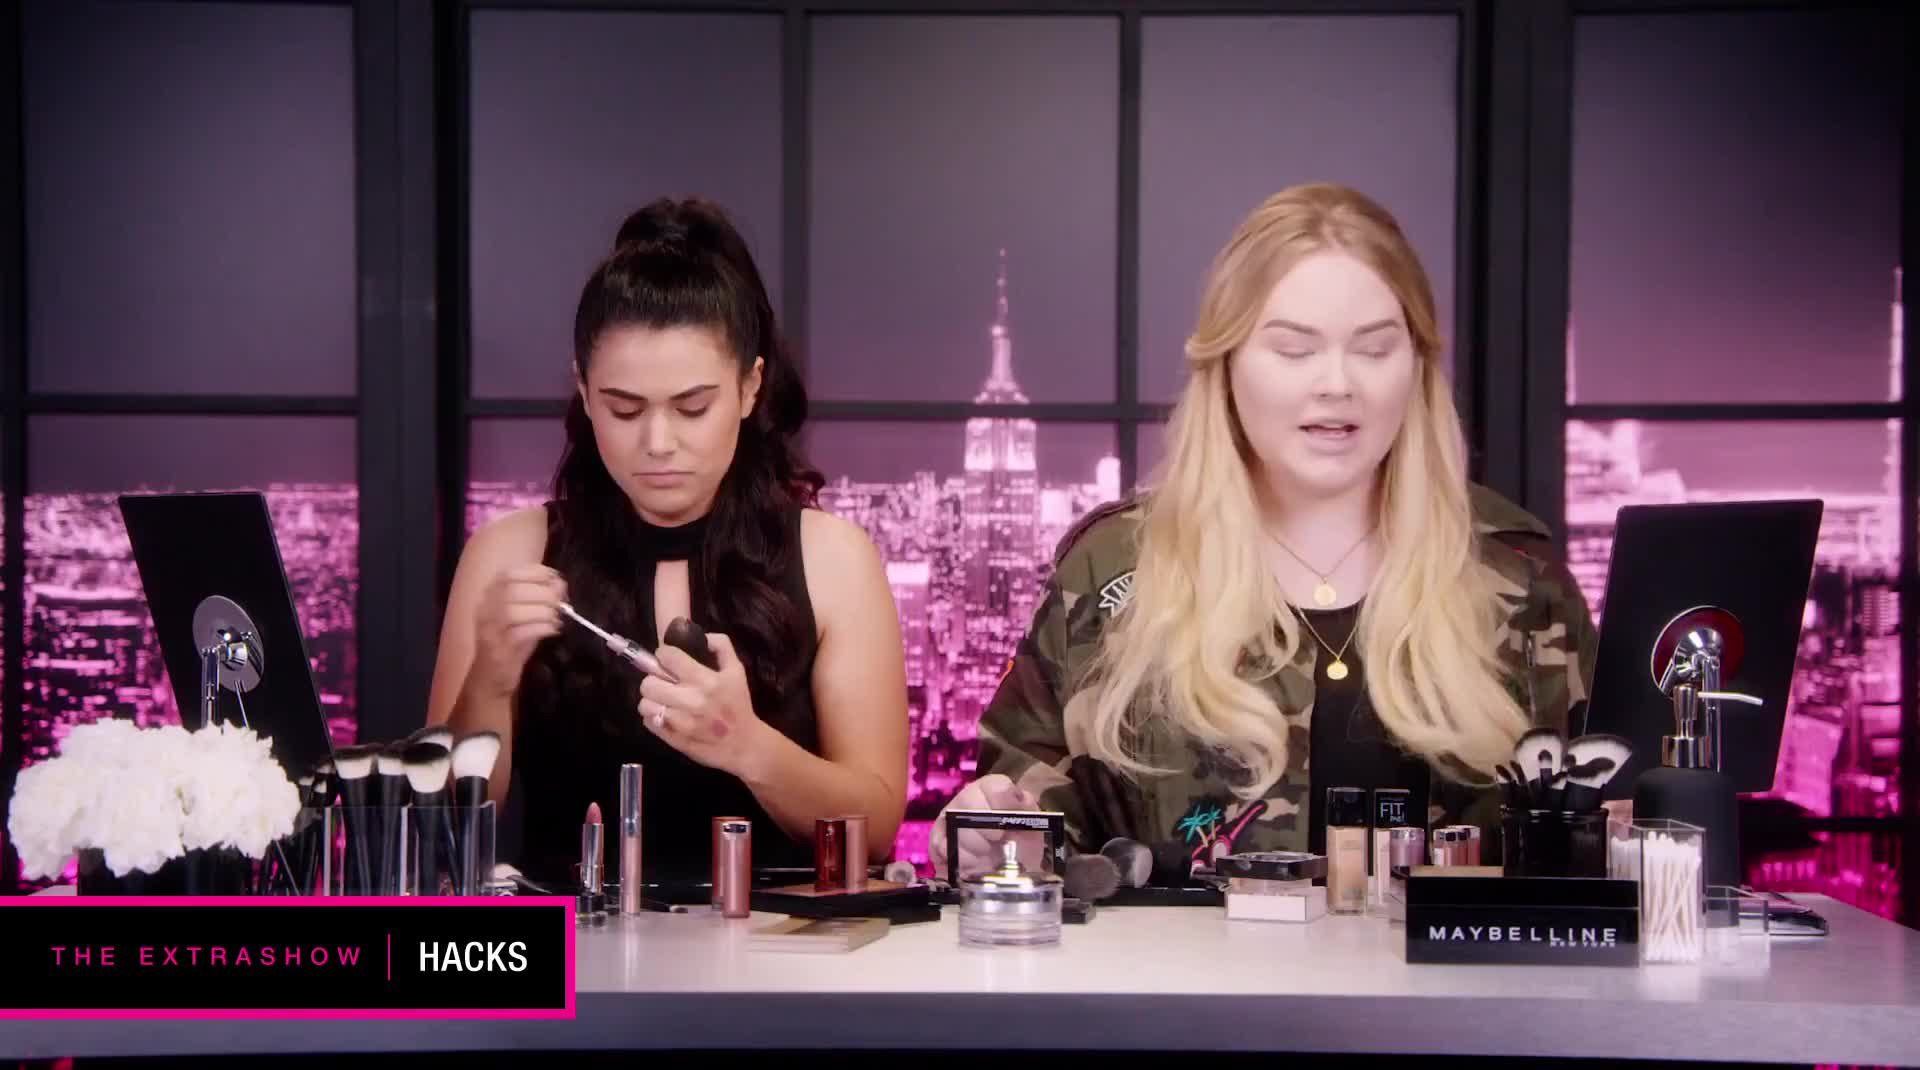 Extra Show 3: Make Hacks Happen | Maybelline New York